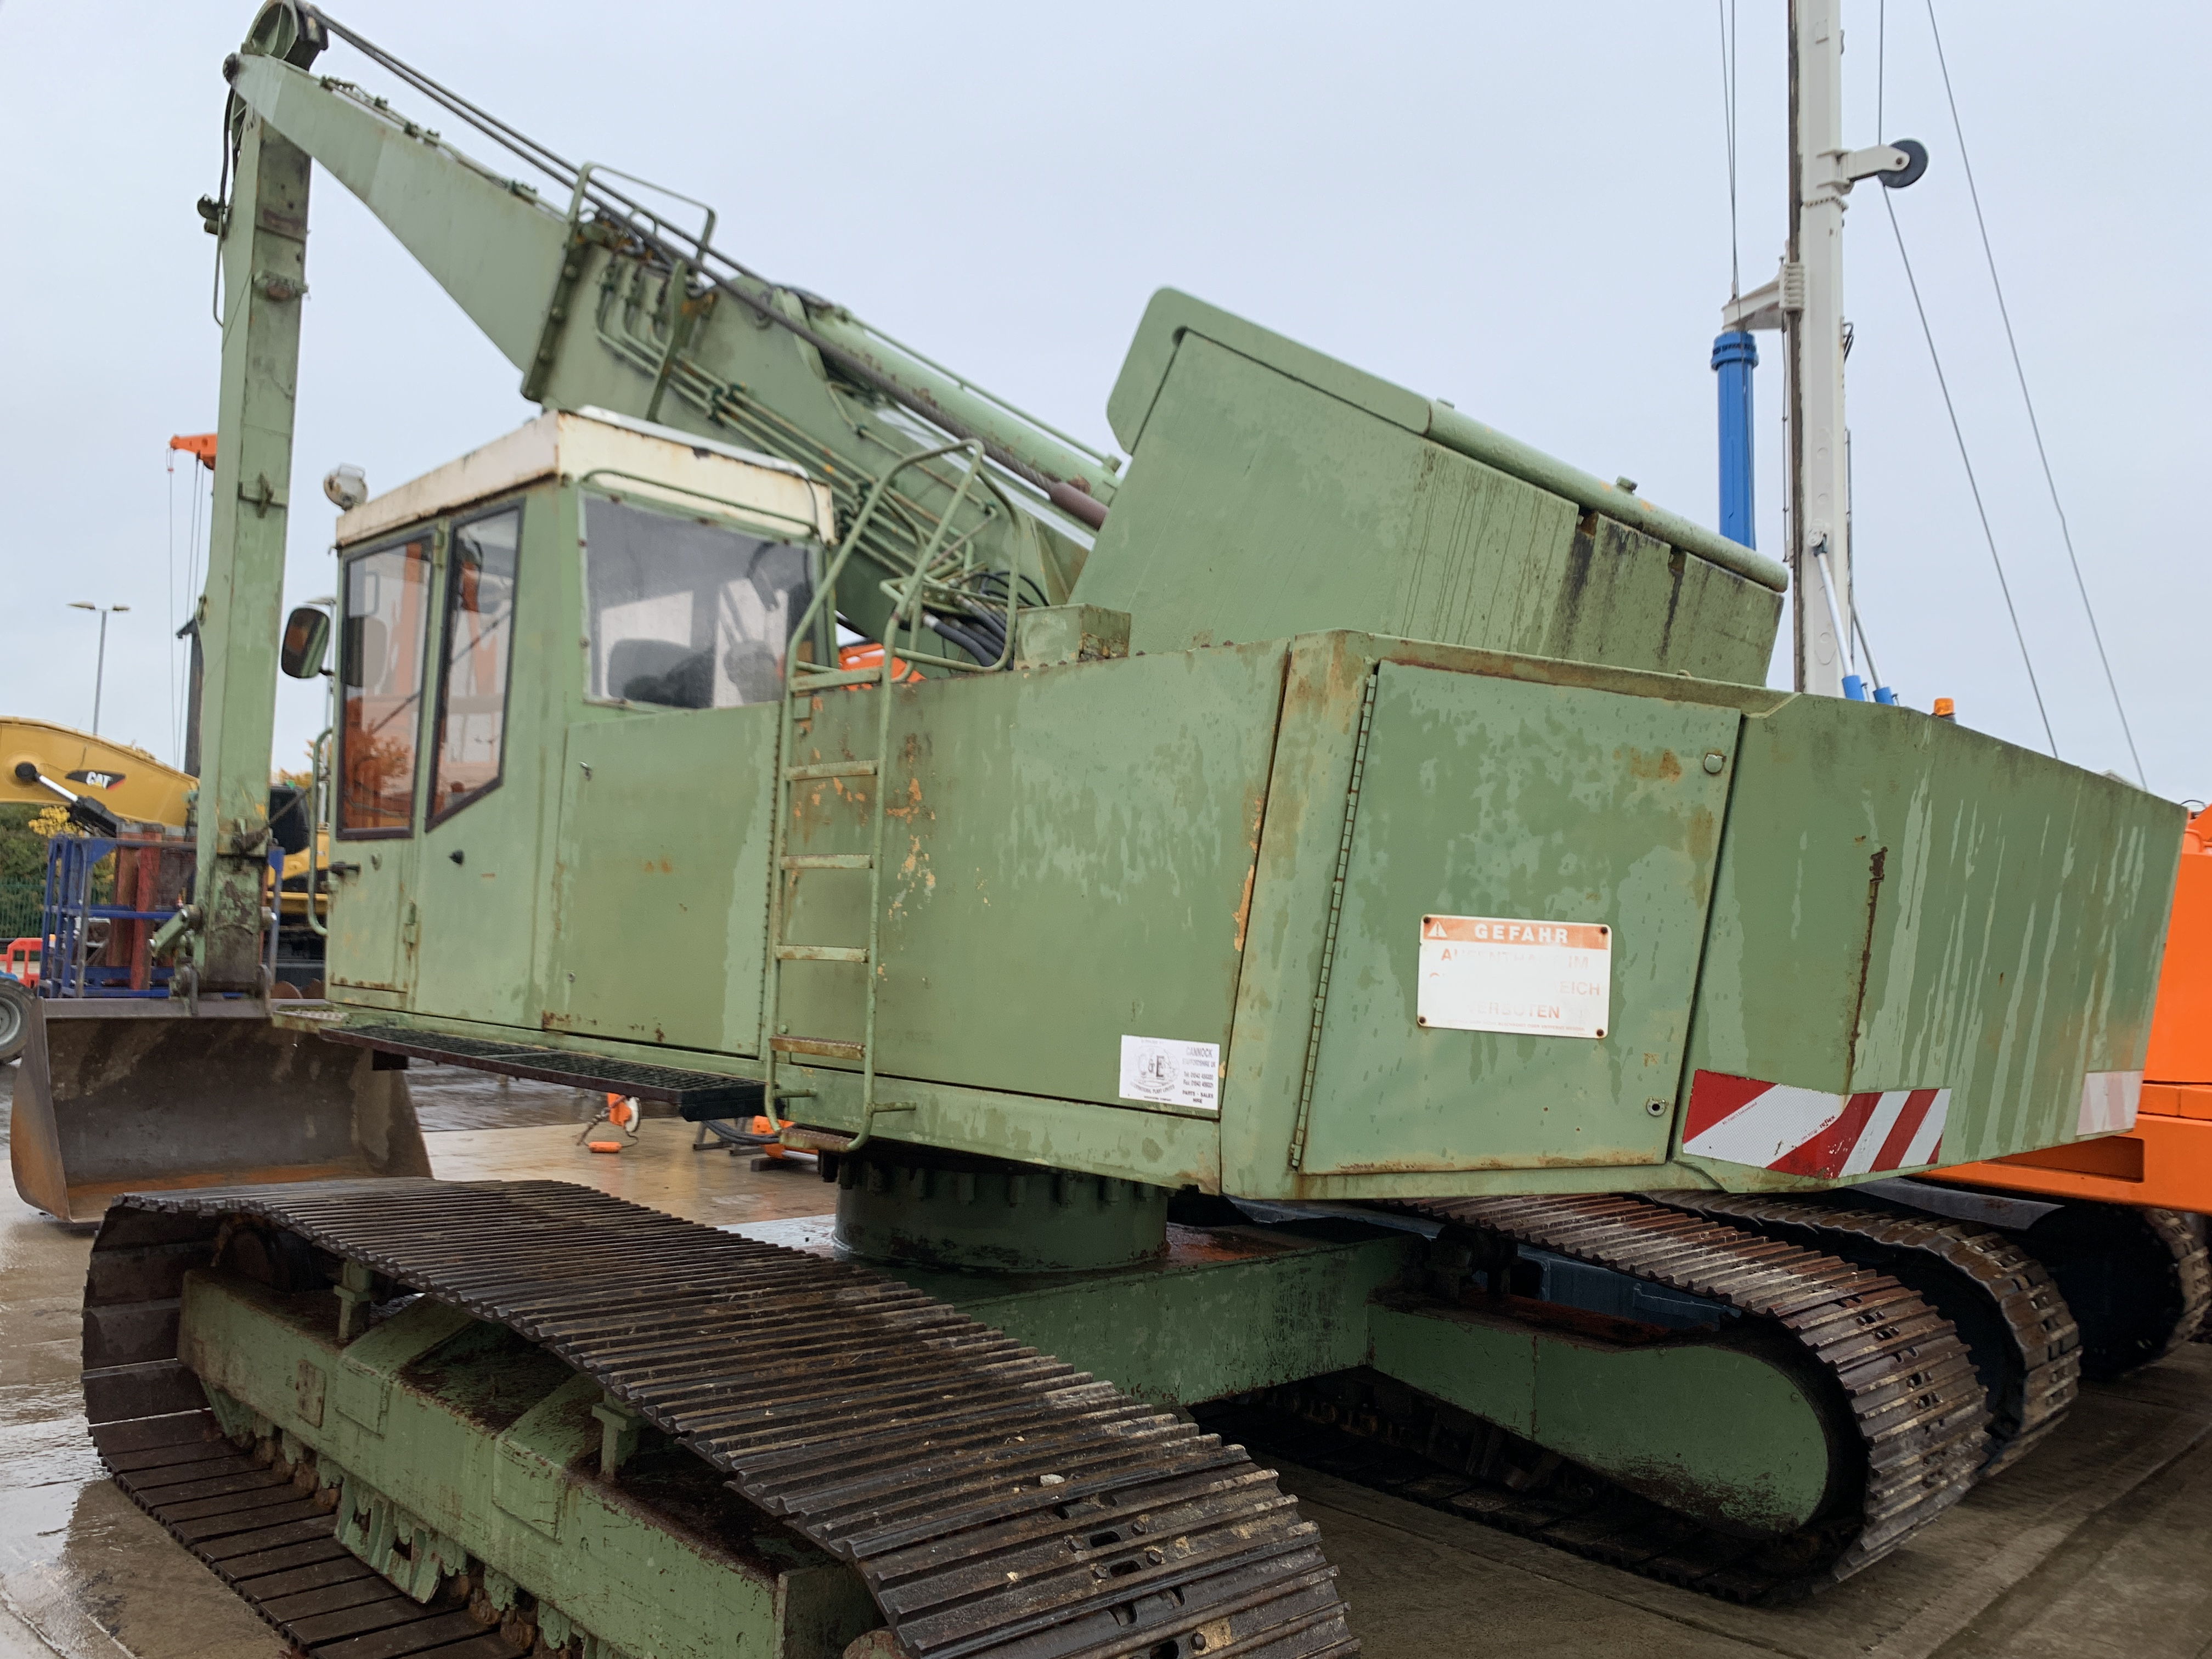 Used Priestman / RB VC20/15 long reach excavator for sale